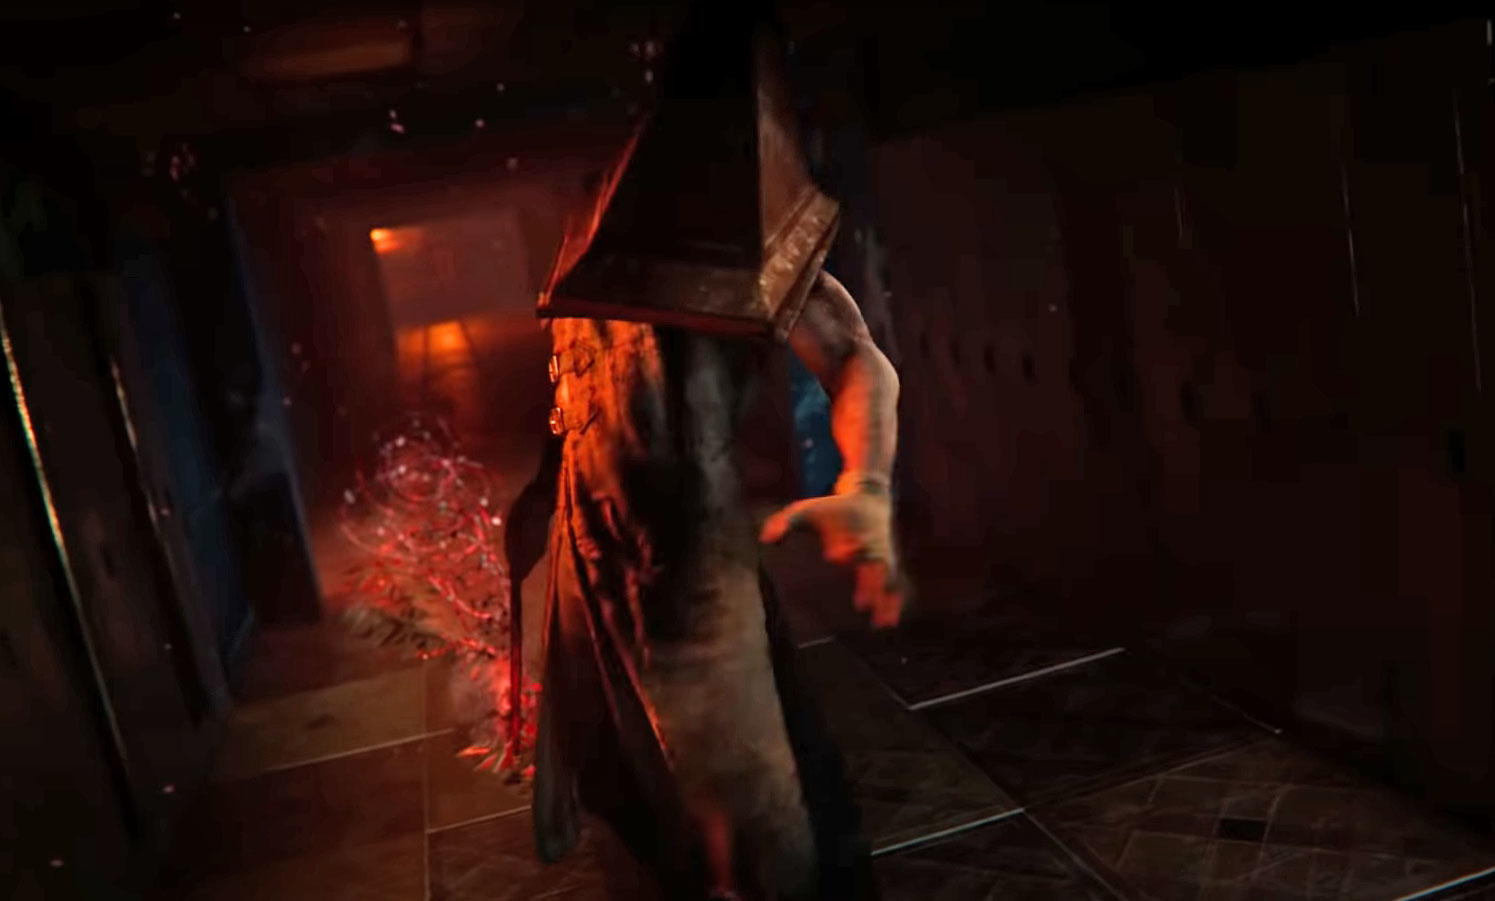 Dead By Daylight next generation consoles